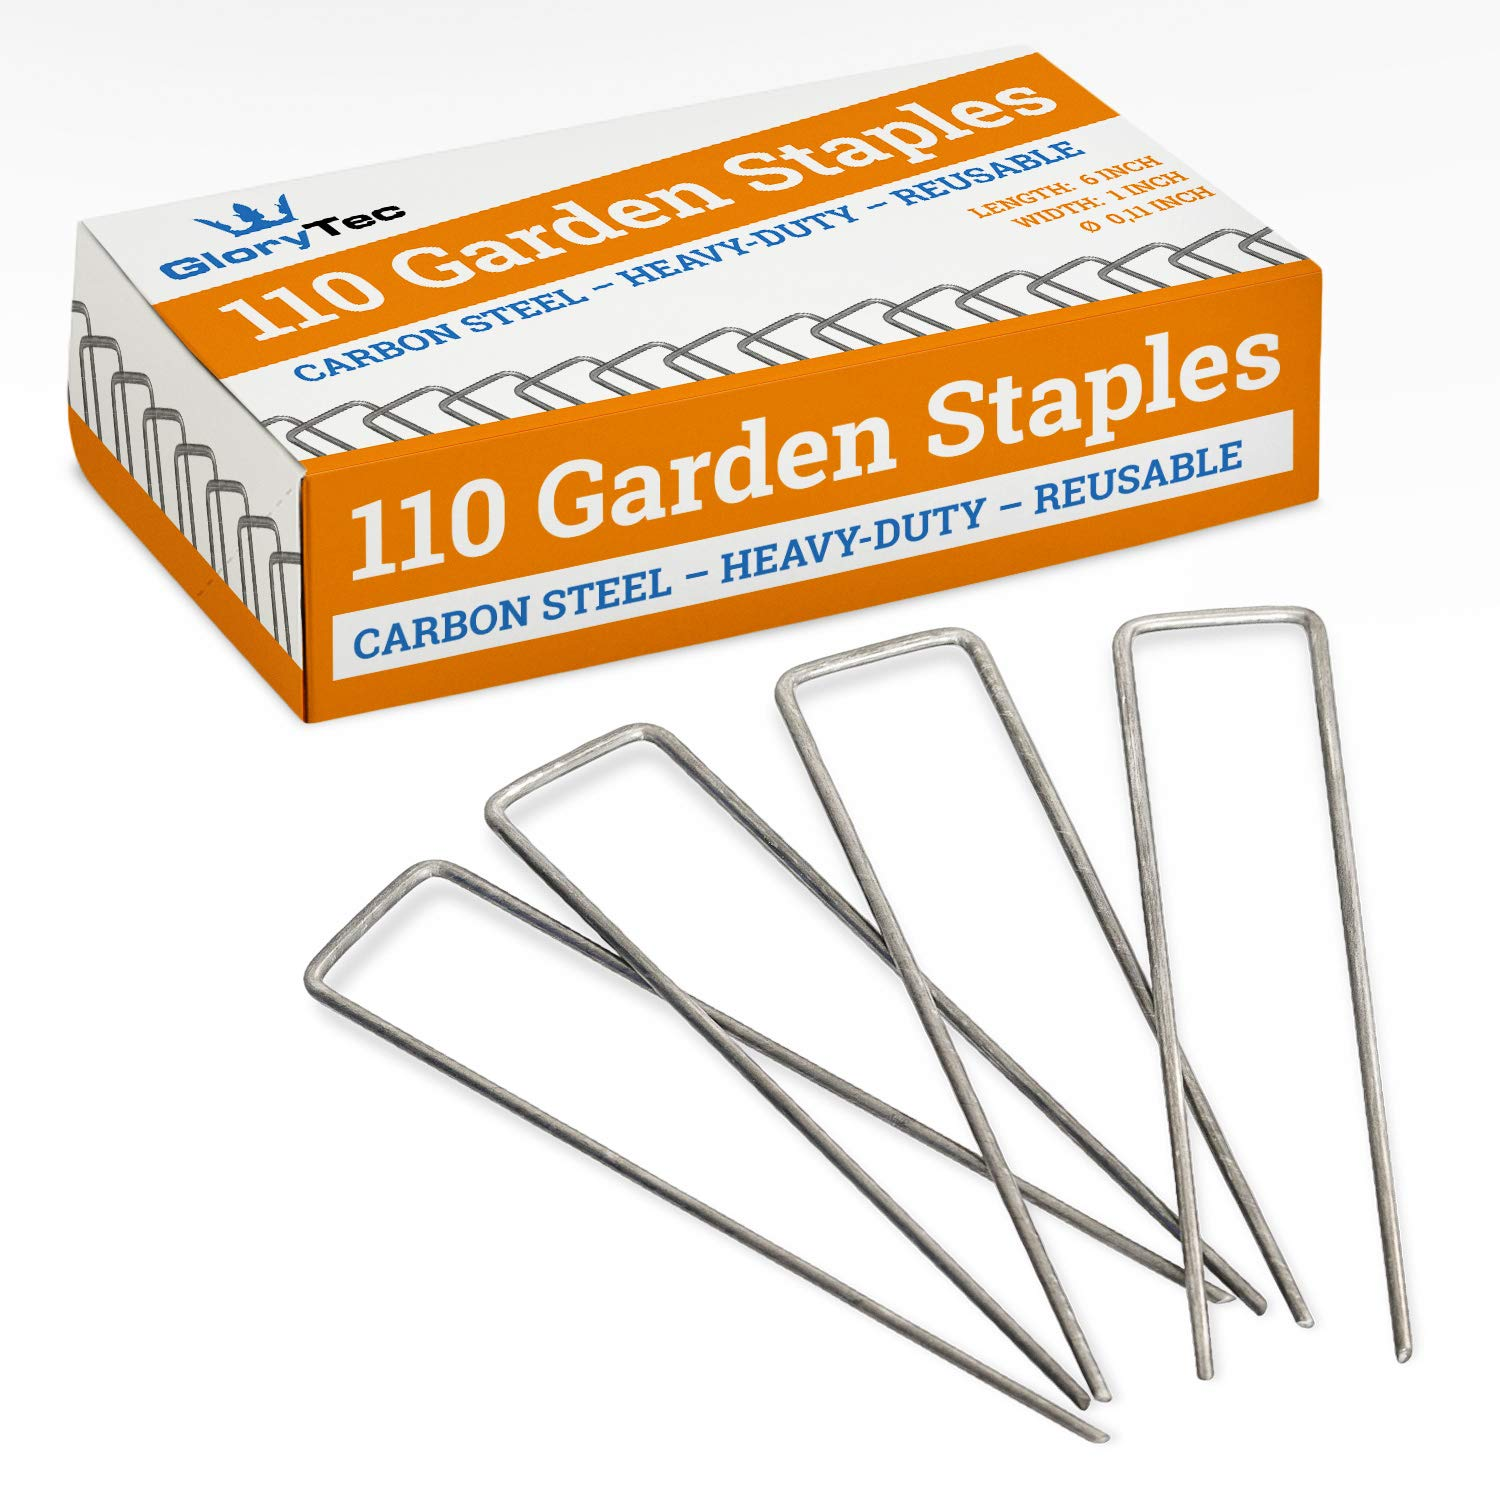 Glorytec 110 Landscape Stakes, 6 Inch 11 Gauge Steel Landscape Staples - Price-Performance Winner 2018- U-Shaped Invisible Fence Yard Stake Landscaping Pins, Carbon Steel Non-Galvanized